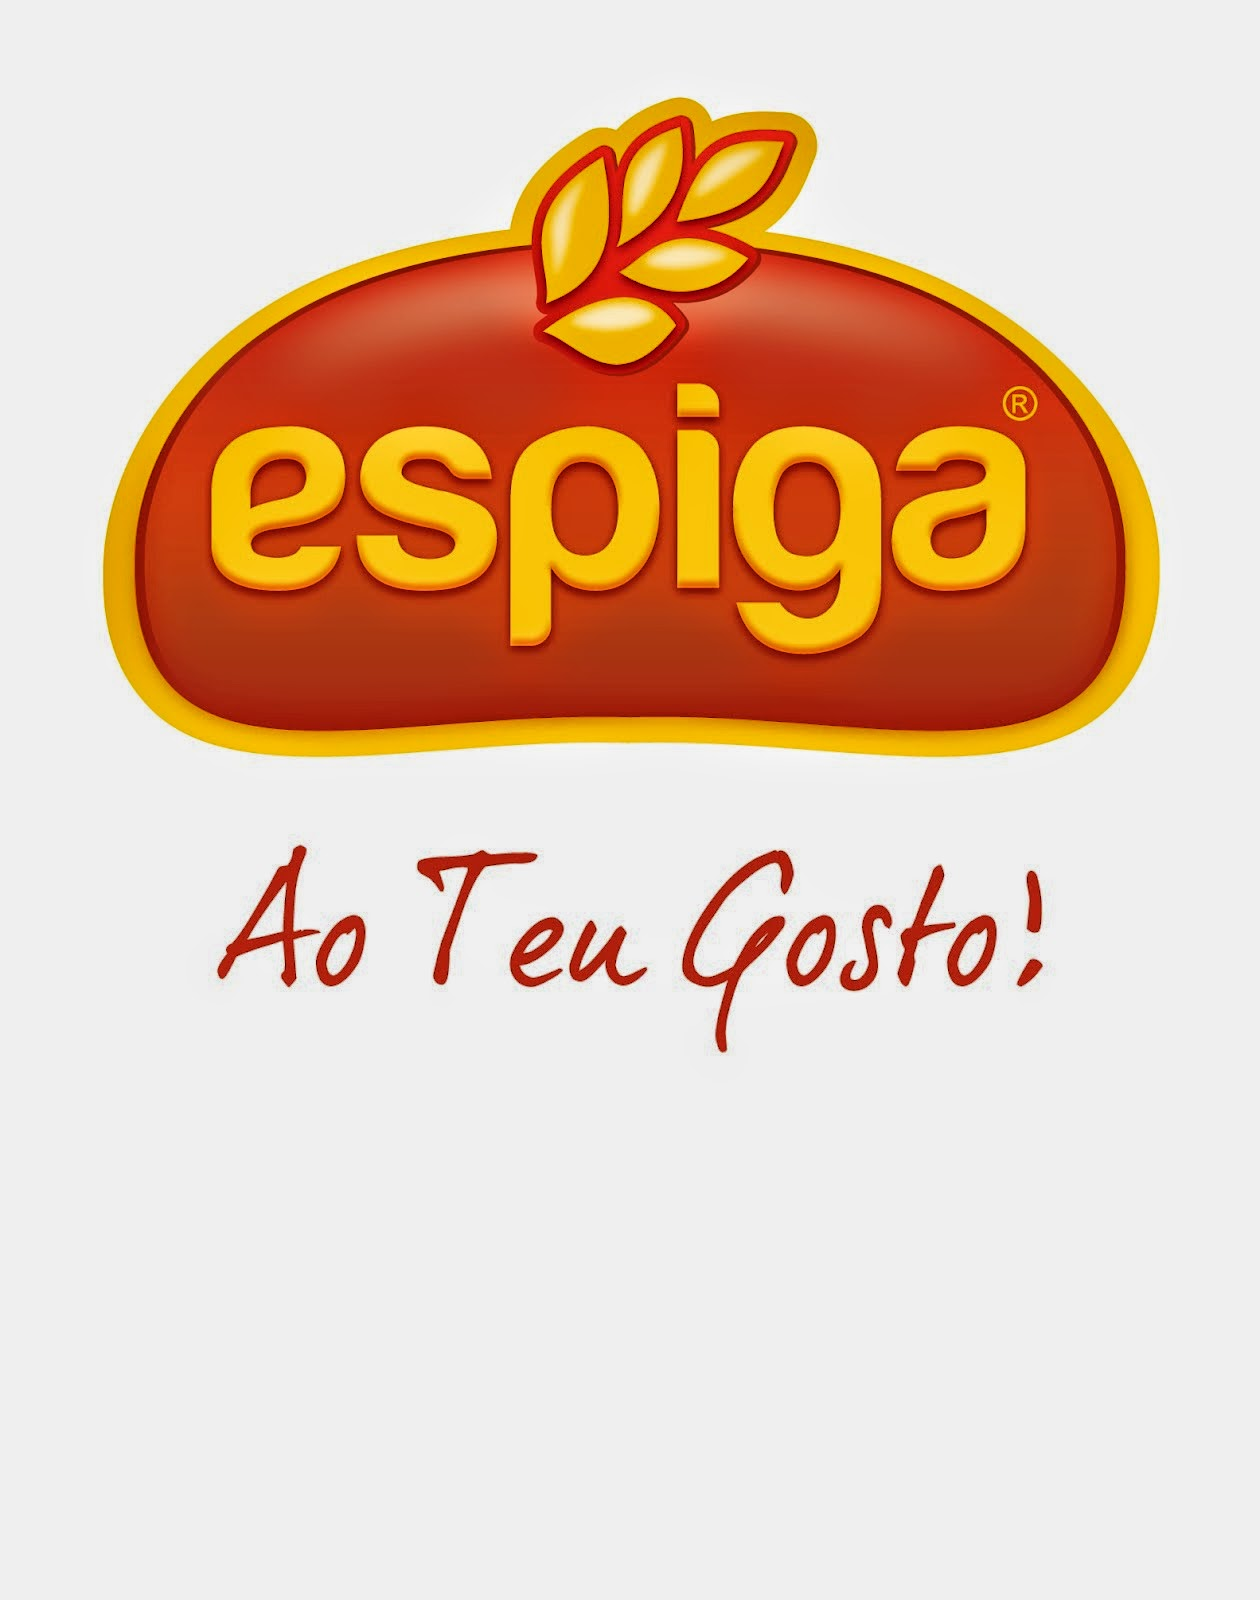 Espiga, Ao Teu Gosto